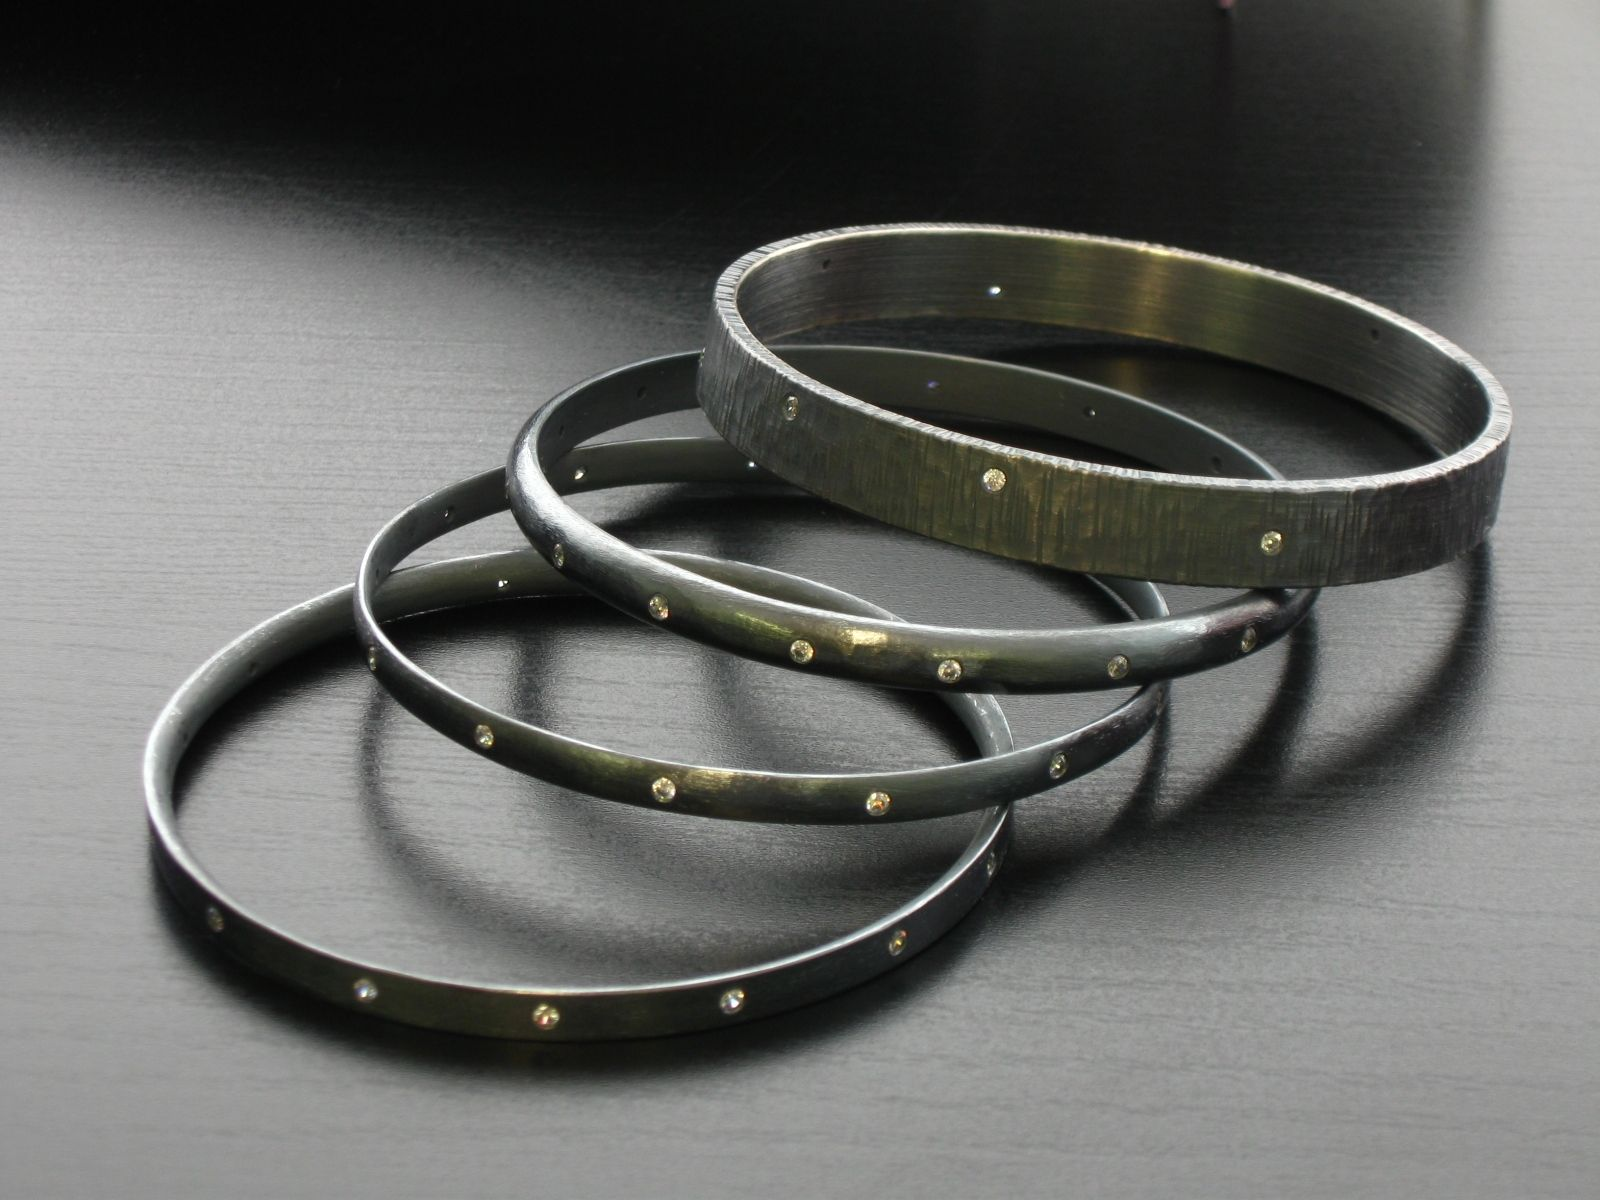 bangle bangles bracelets new black silver stunning bracelet crystal products gethuda women brand unique a accessories l m nialaya fashions jewelry af arrivals condition absolutely